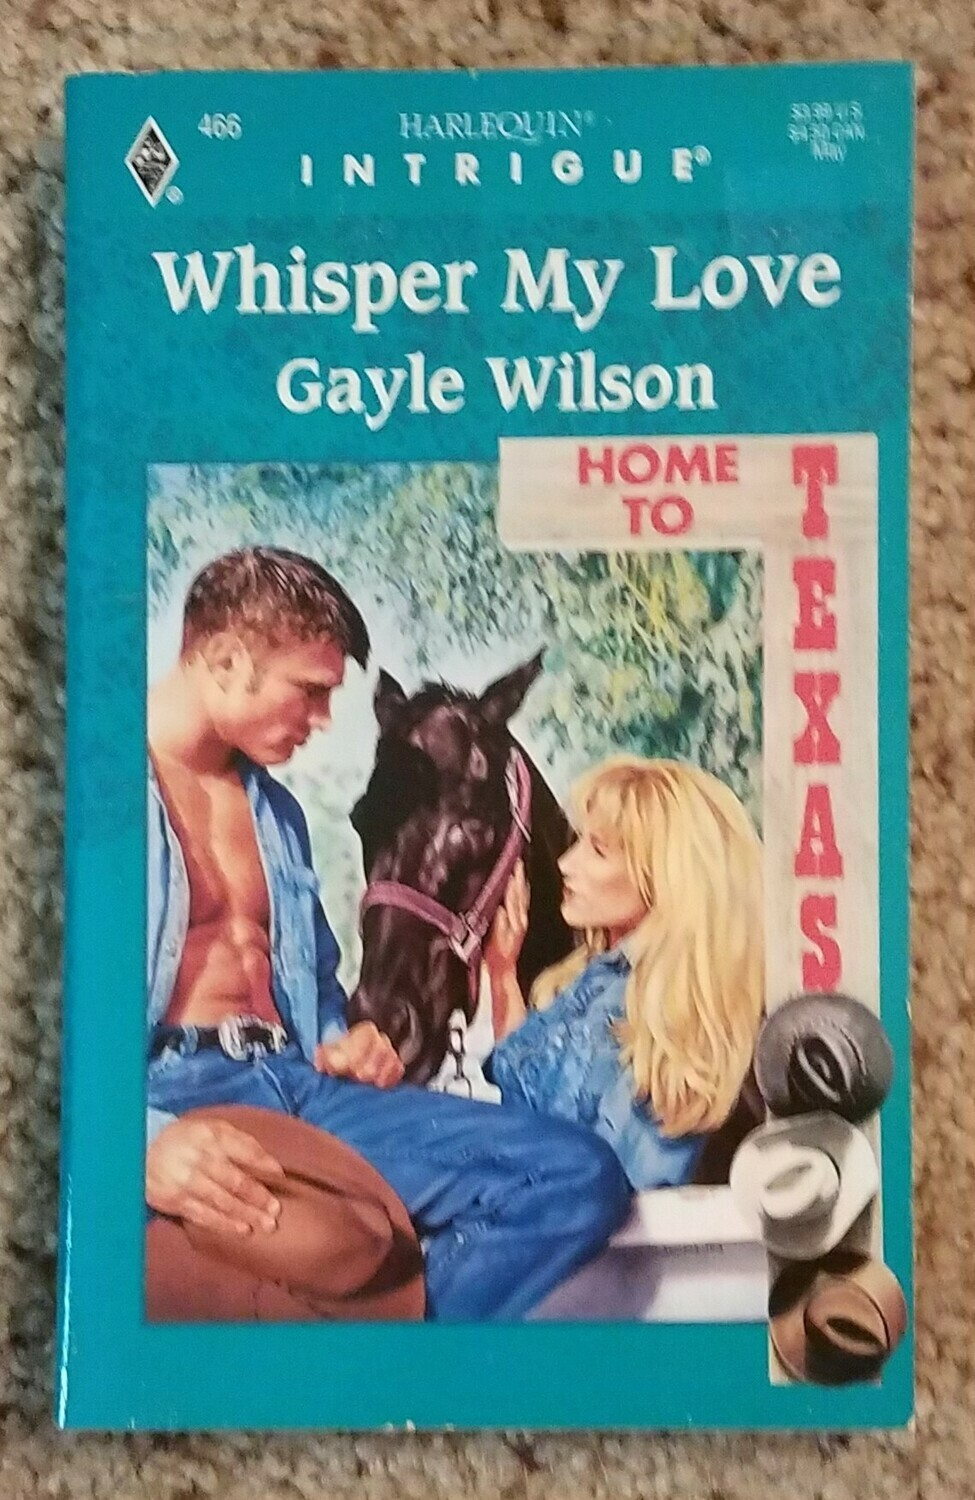 Whisper My Love by Gayle Wilson